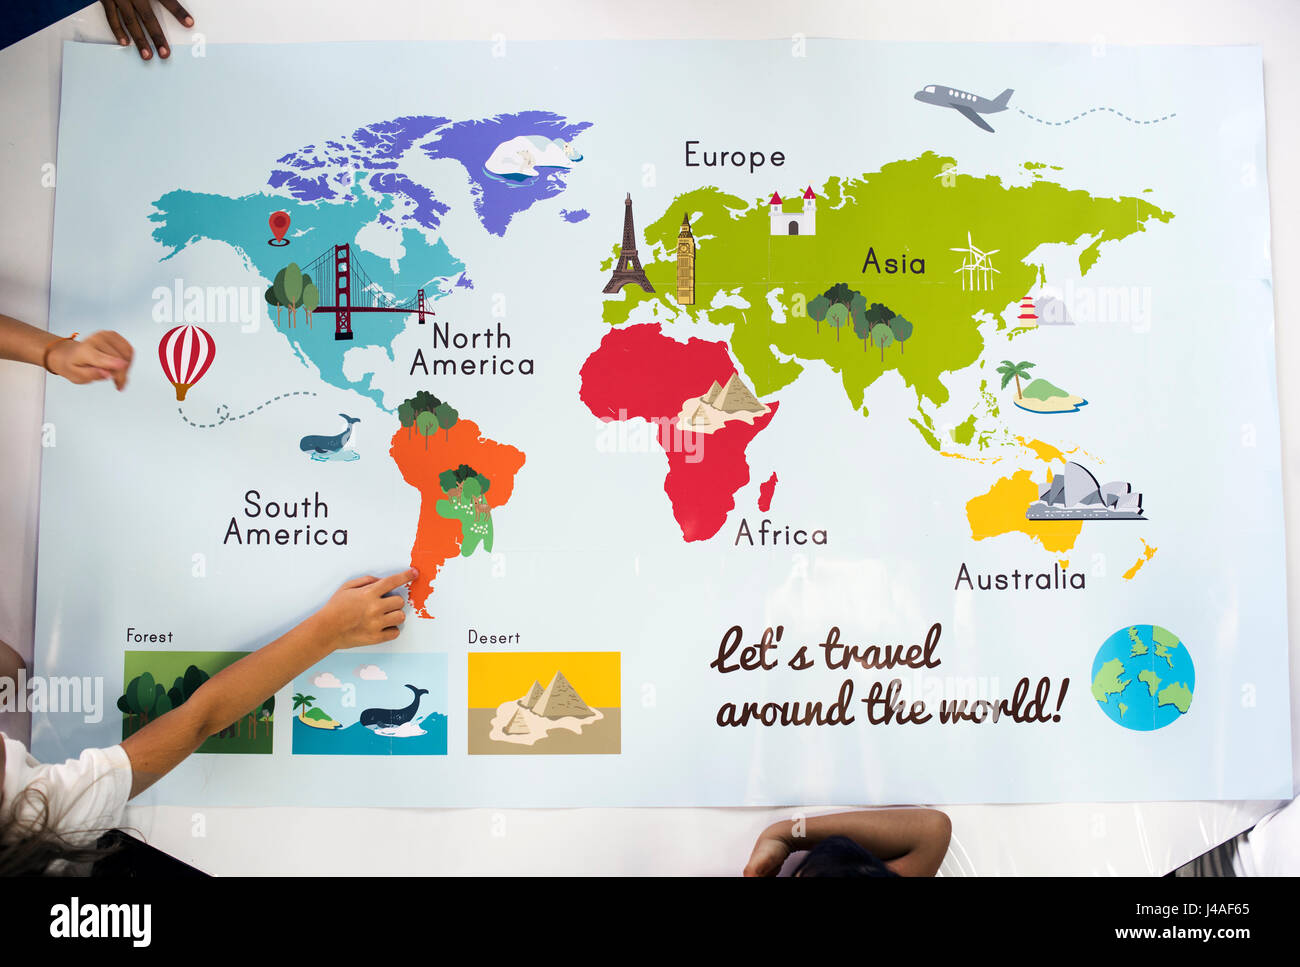 Map Showing World Continents Countries Ocean Geography Stock Photo - Map showing continents and oceans